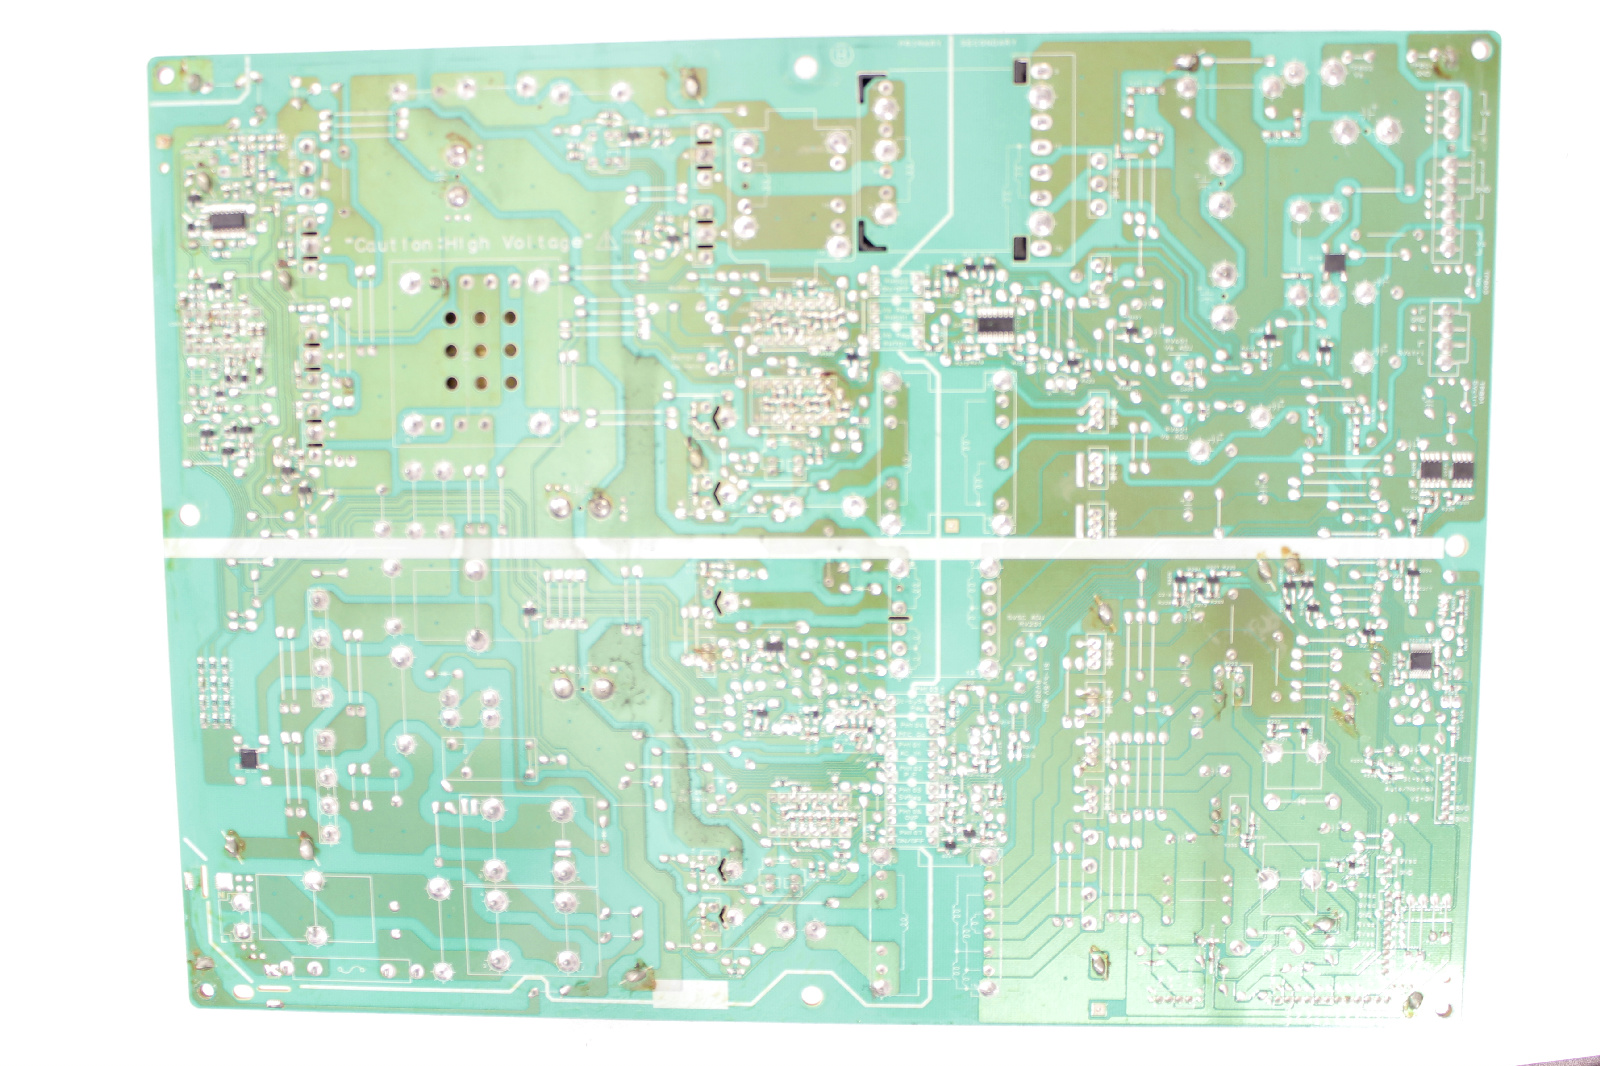 Toshiba 50hp66 Schematic Diagram 50hm66 52hm95 Wiring Diagrams Television Power Supply 3501q00200a Tvparts At Tvpartsinstock On